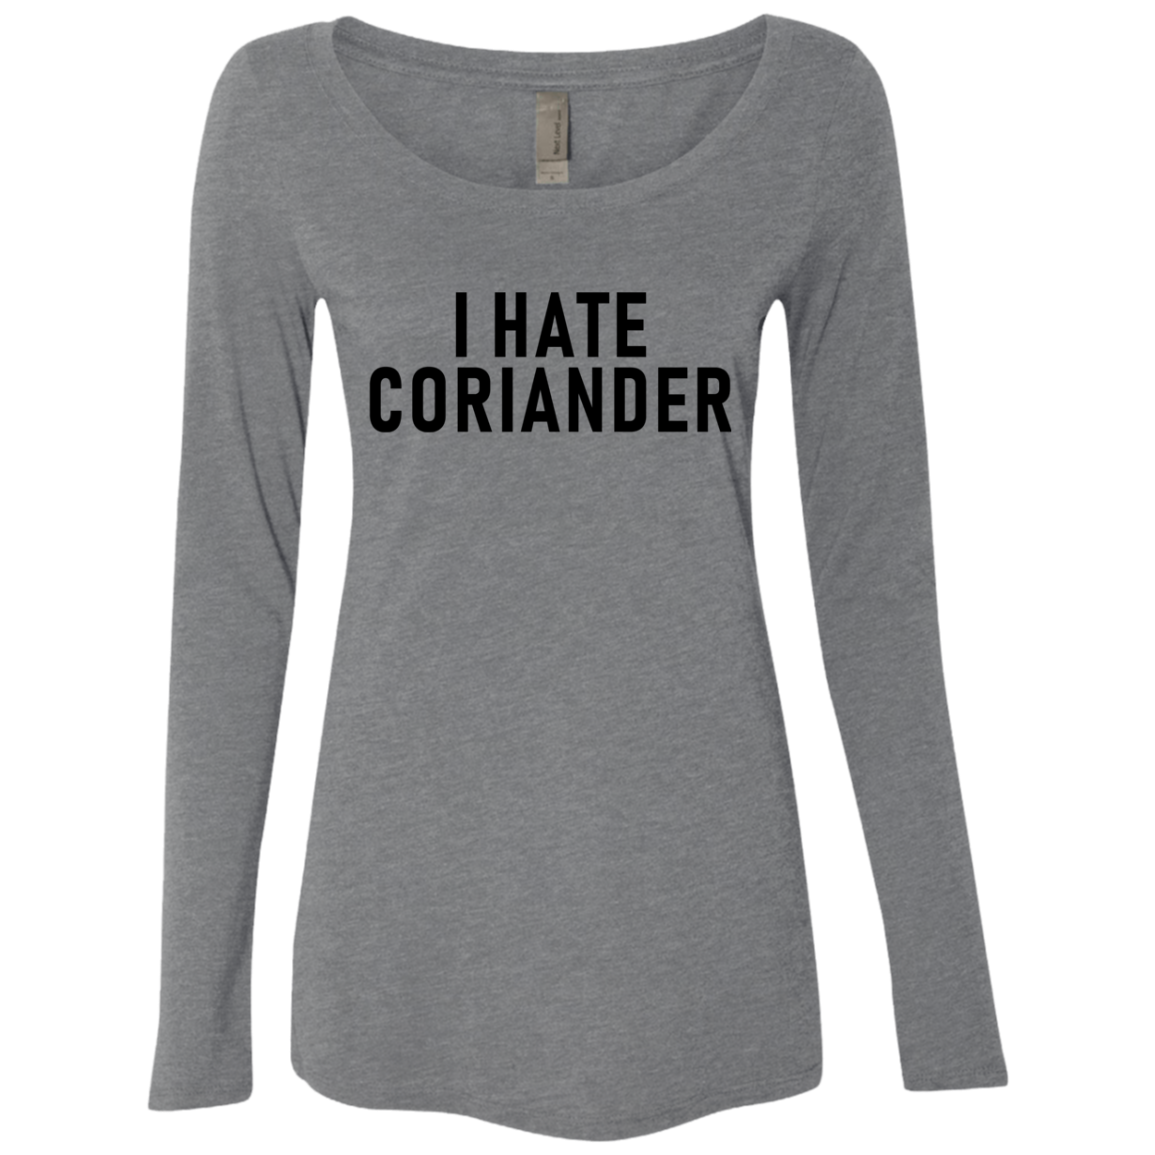 I Hate Coriander Women's Long Sleeve Tee